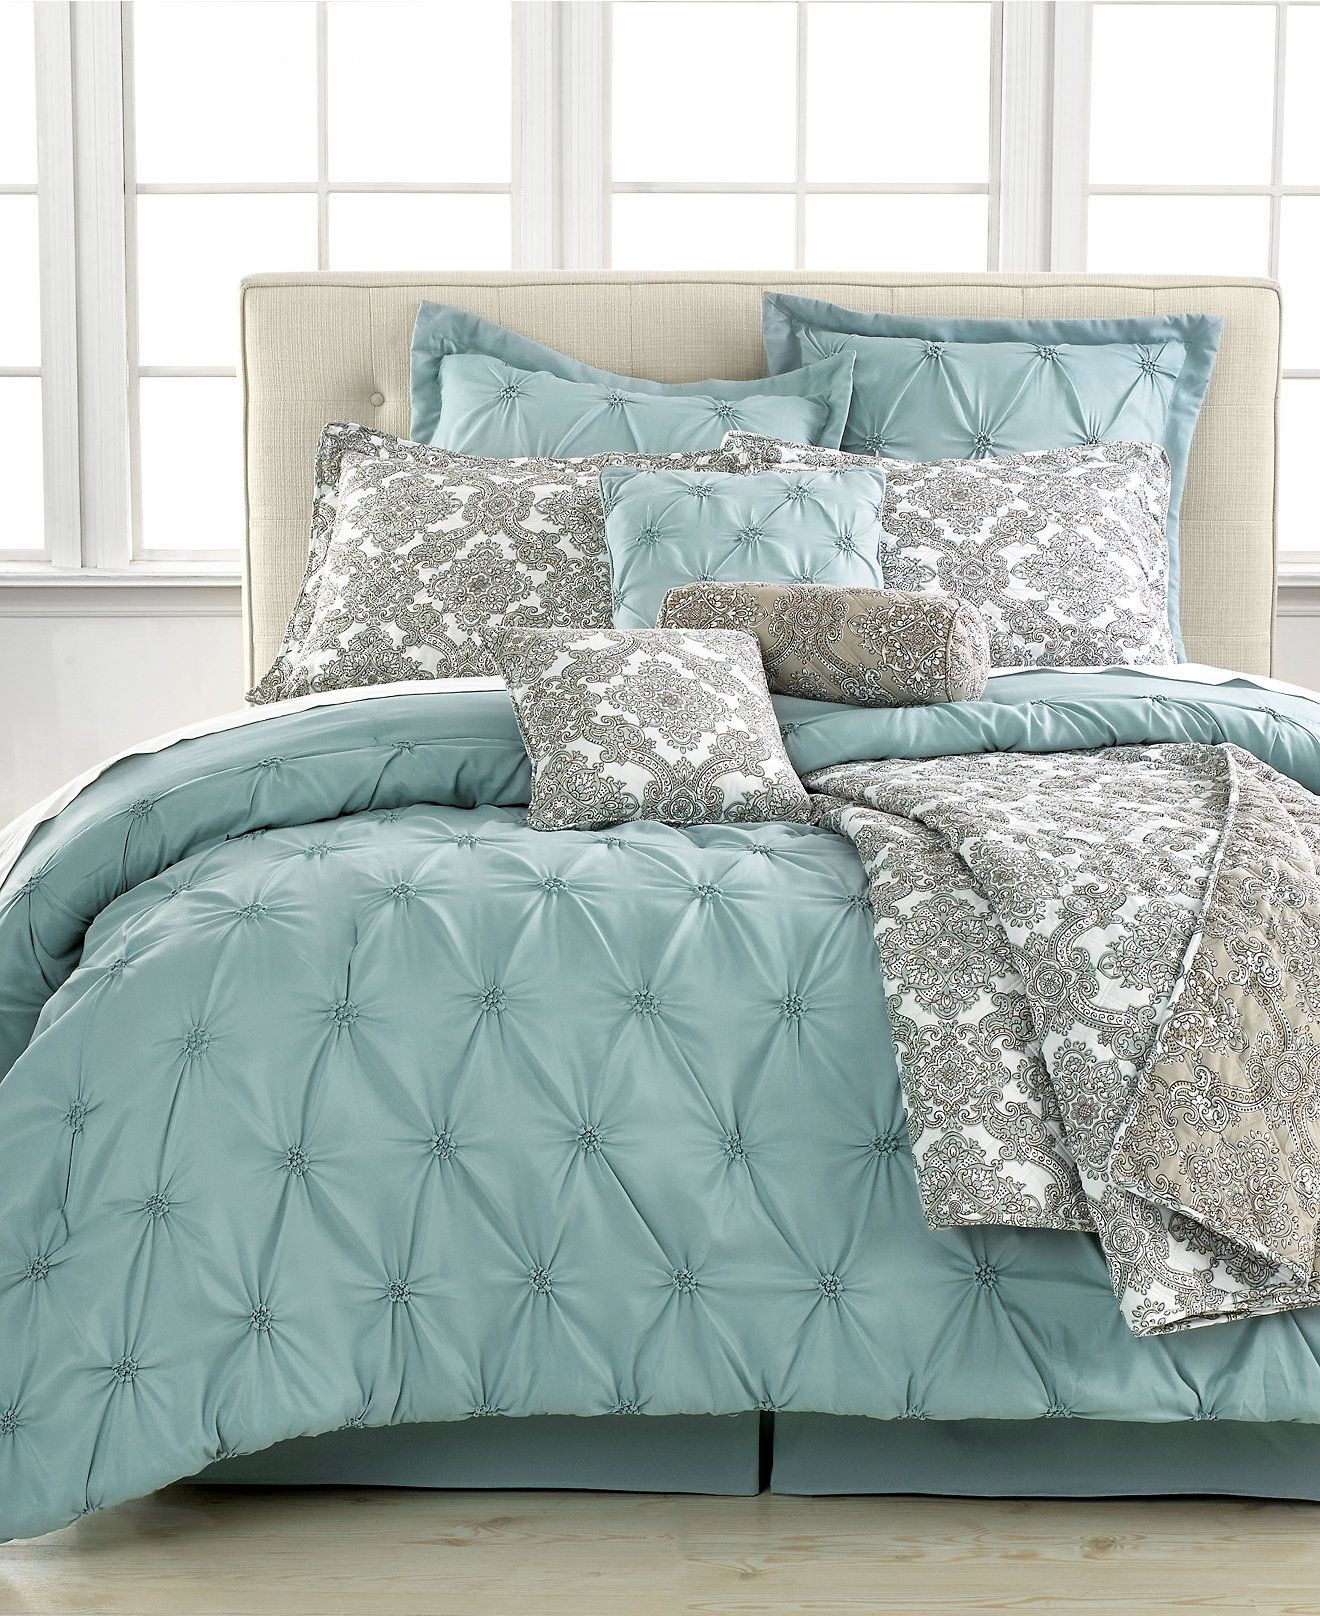 coral tiffany bed bedding blue dorm adpi and blog decor designer sorority